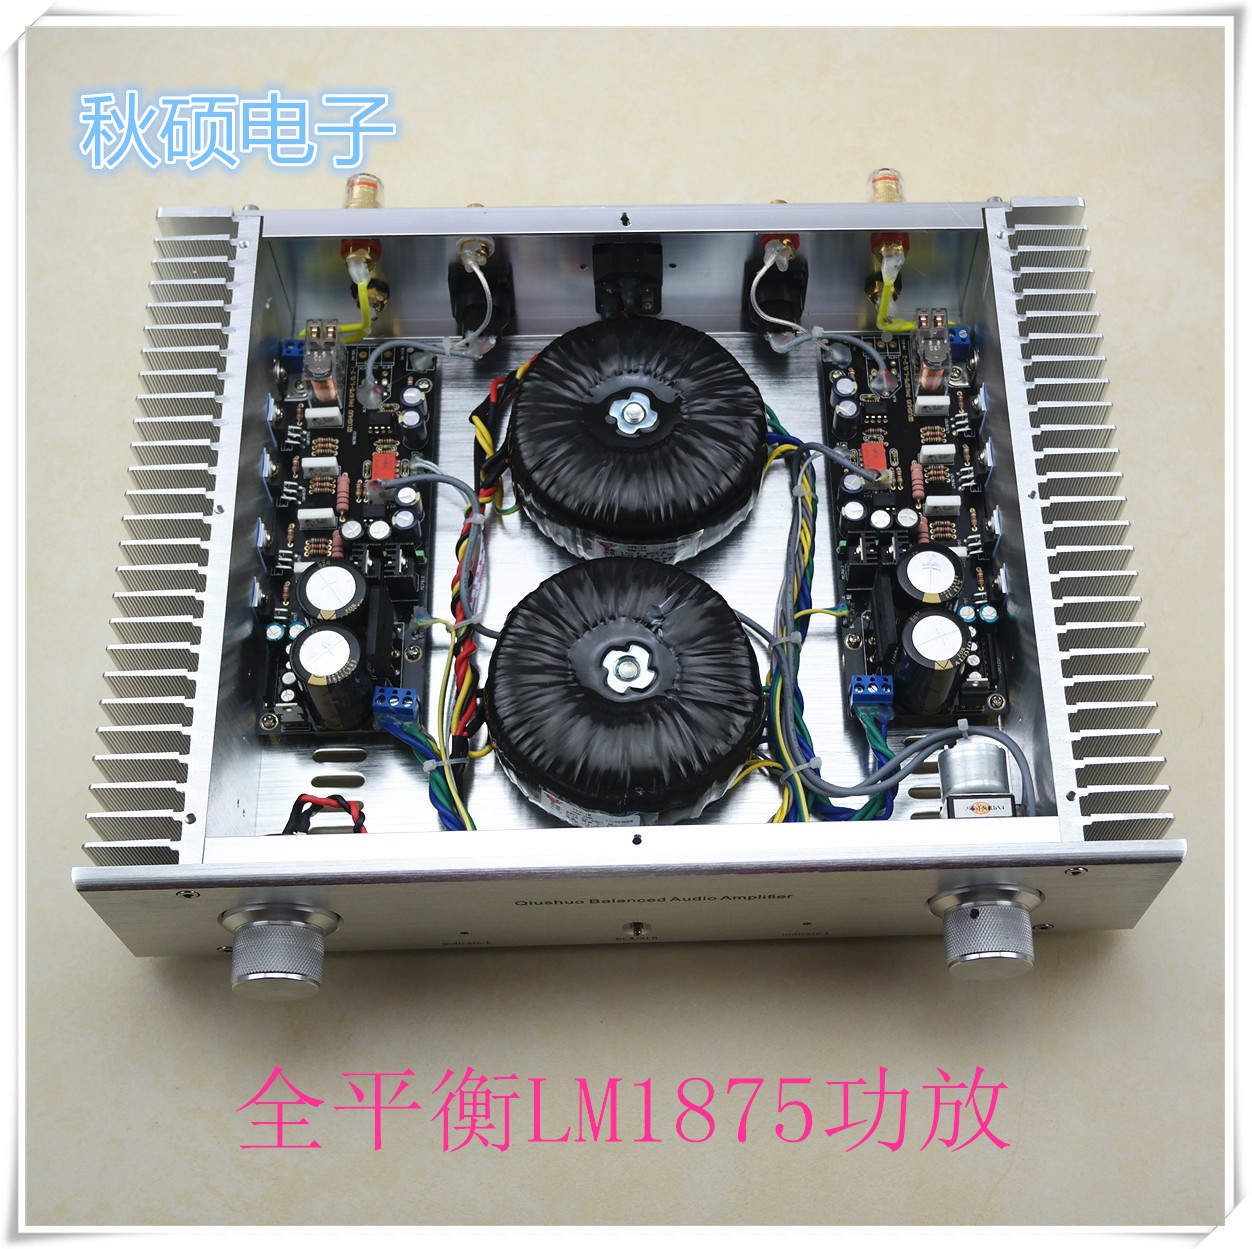 228 46] 17Qiushuo Audio LM3886 Power Amplifier LM1875 Fully